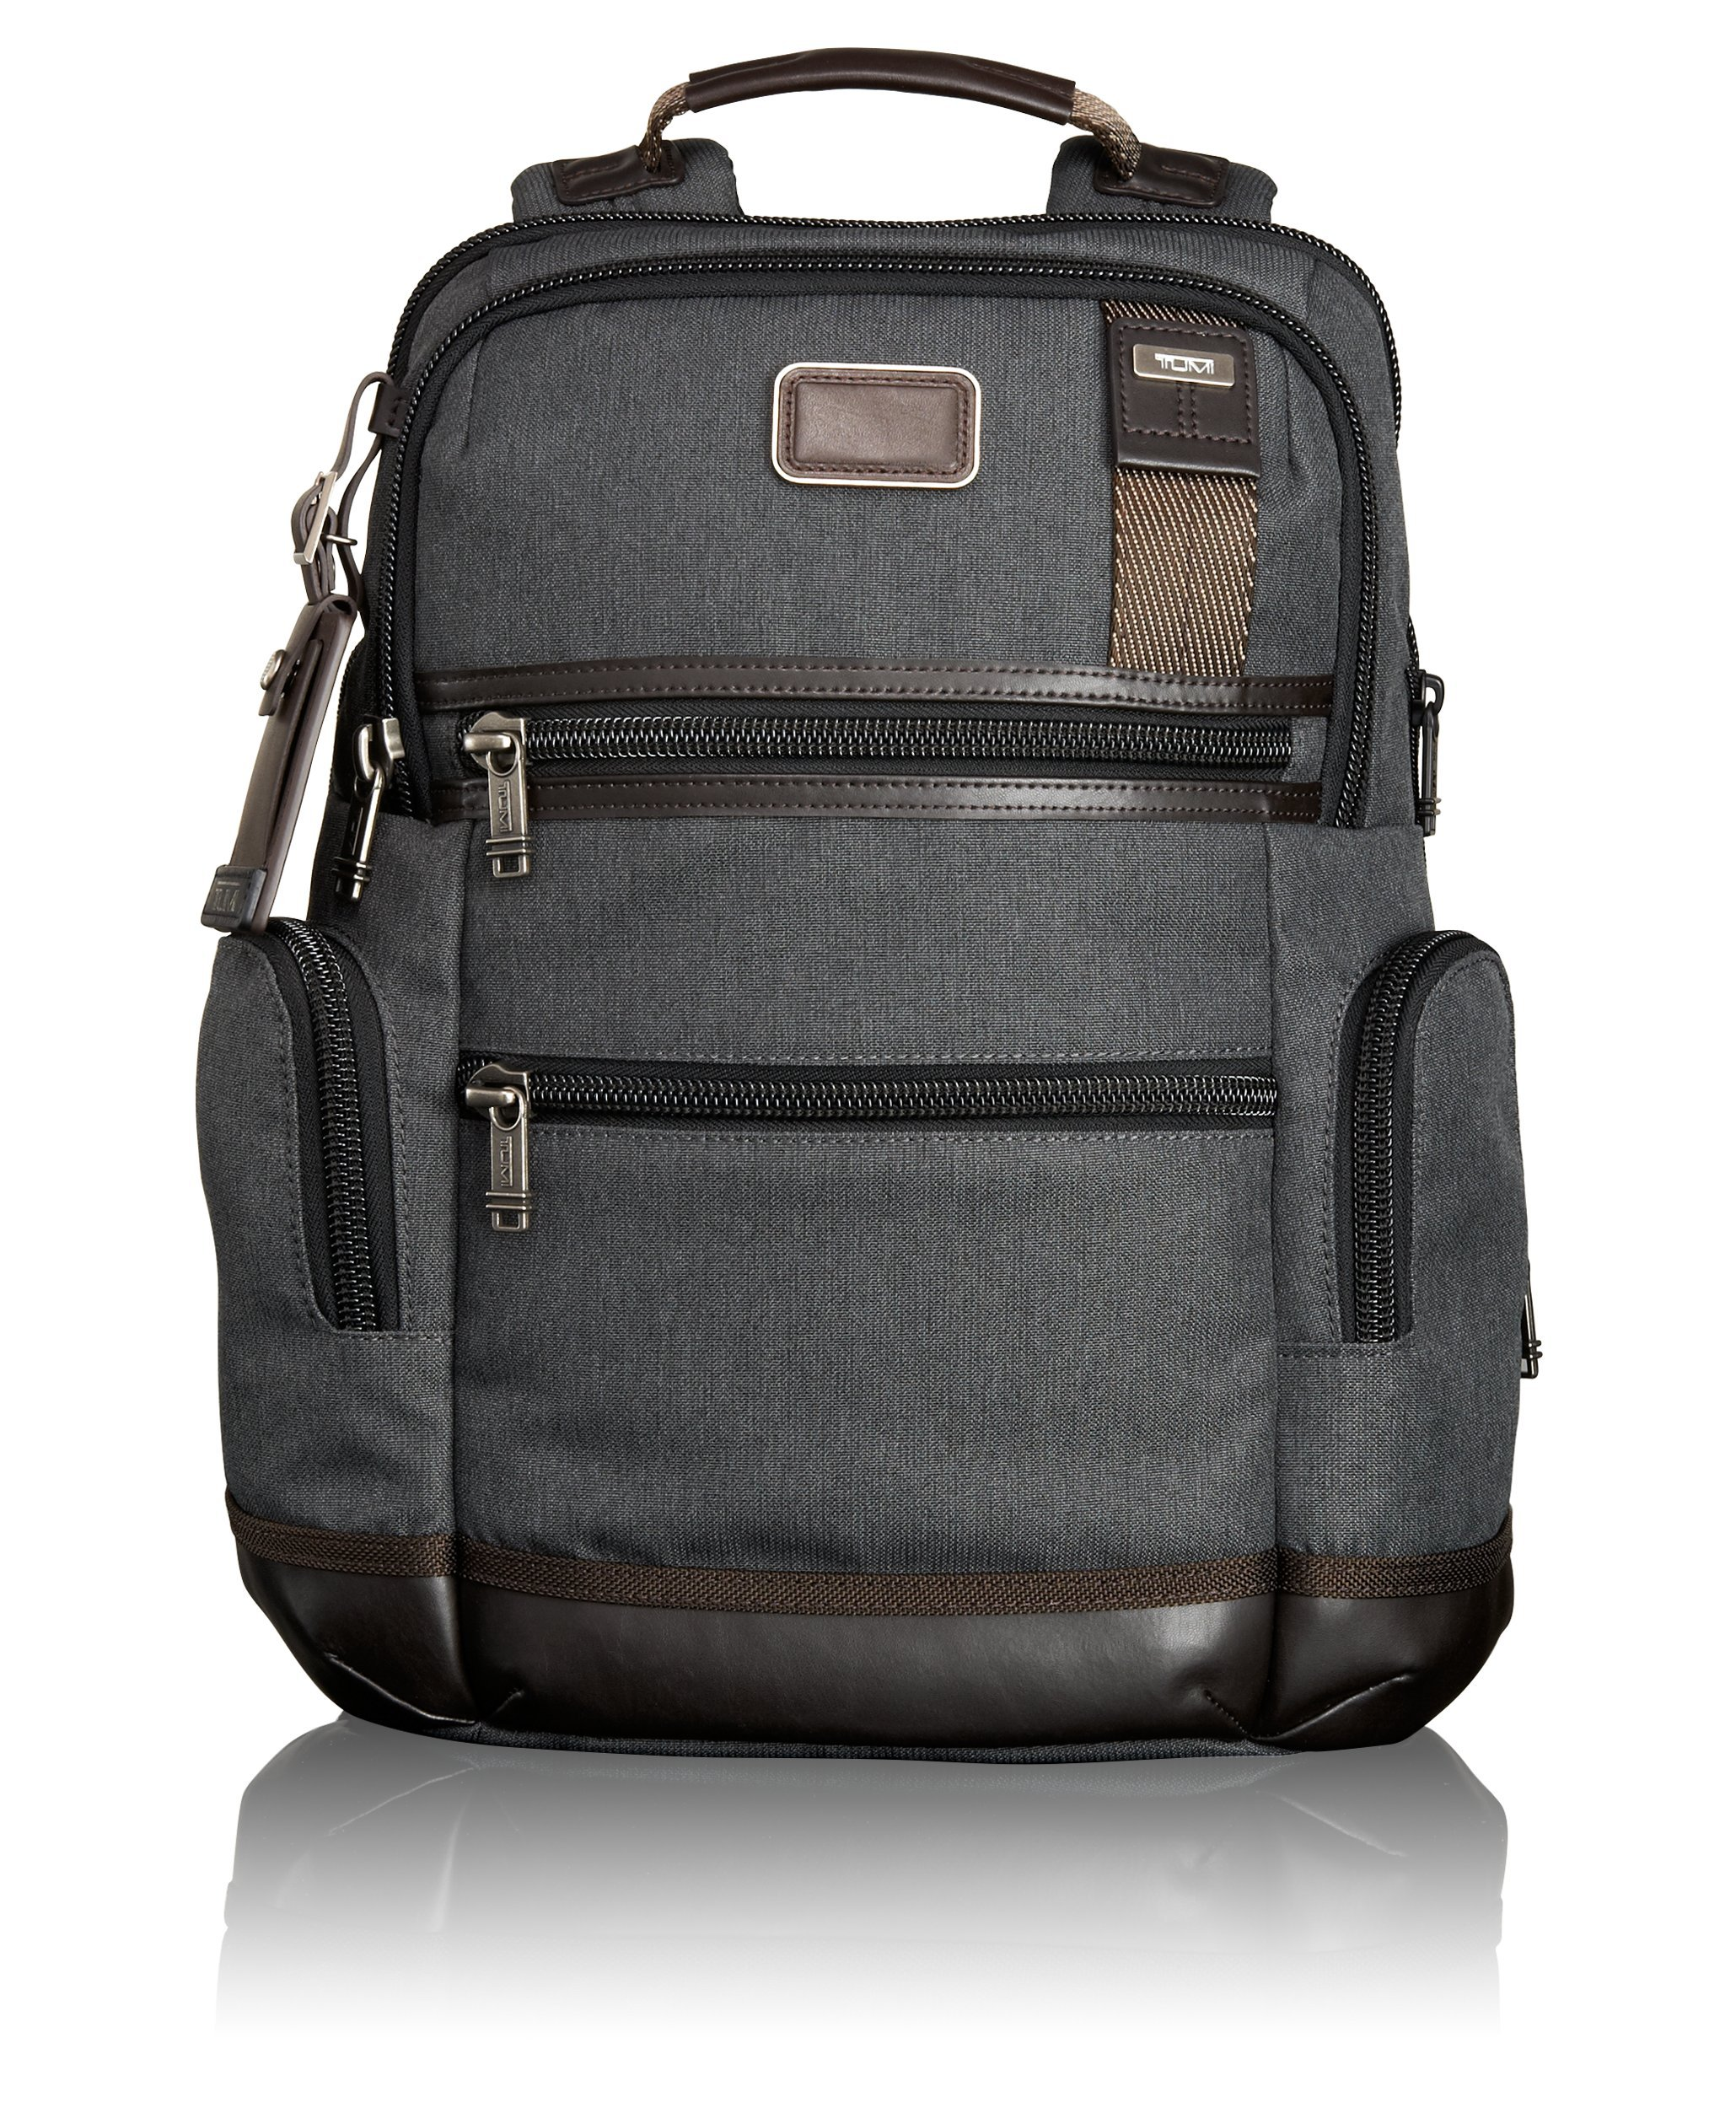 Tumi Alpha Bravo Knox Backpack, Anthracite, One Size